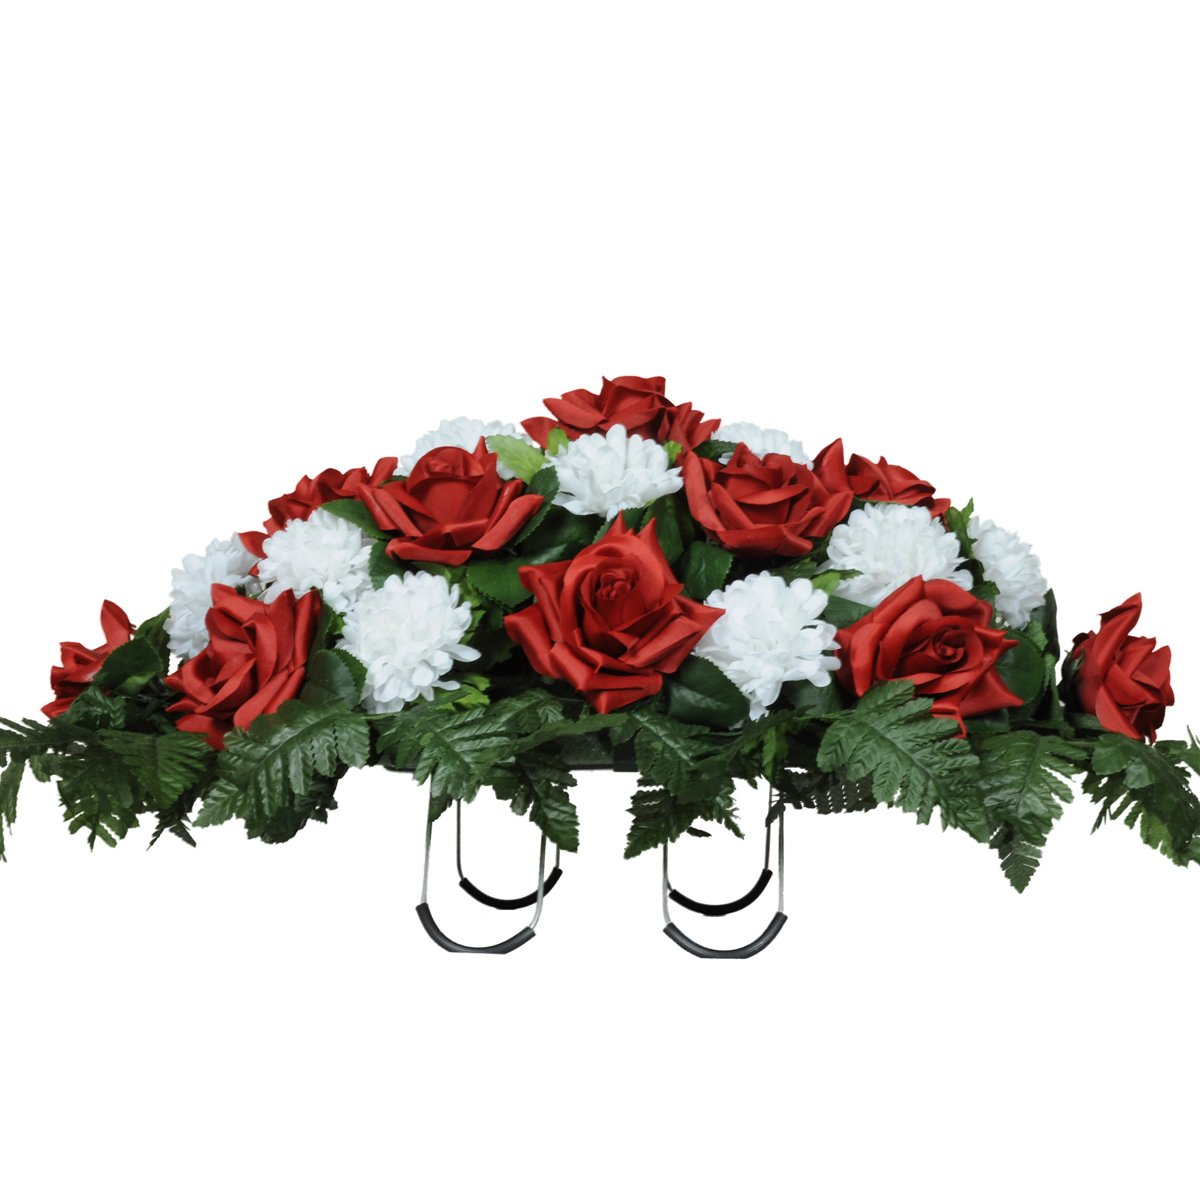 Red and White Flower Arrangements: Amazon.com